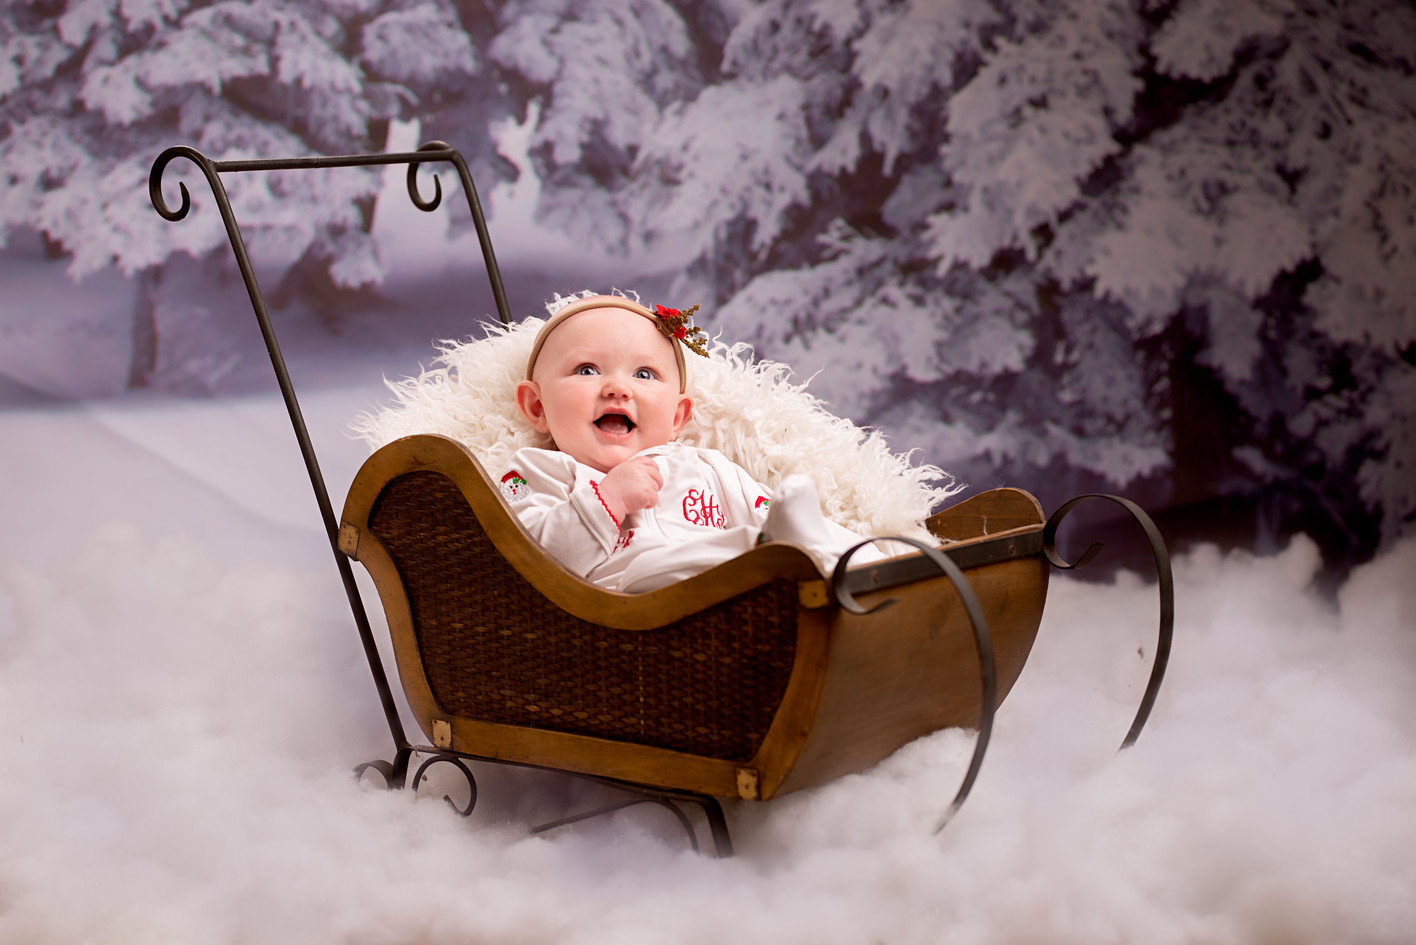 Snowy 3 month milestone photography